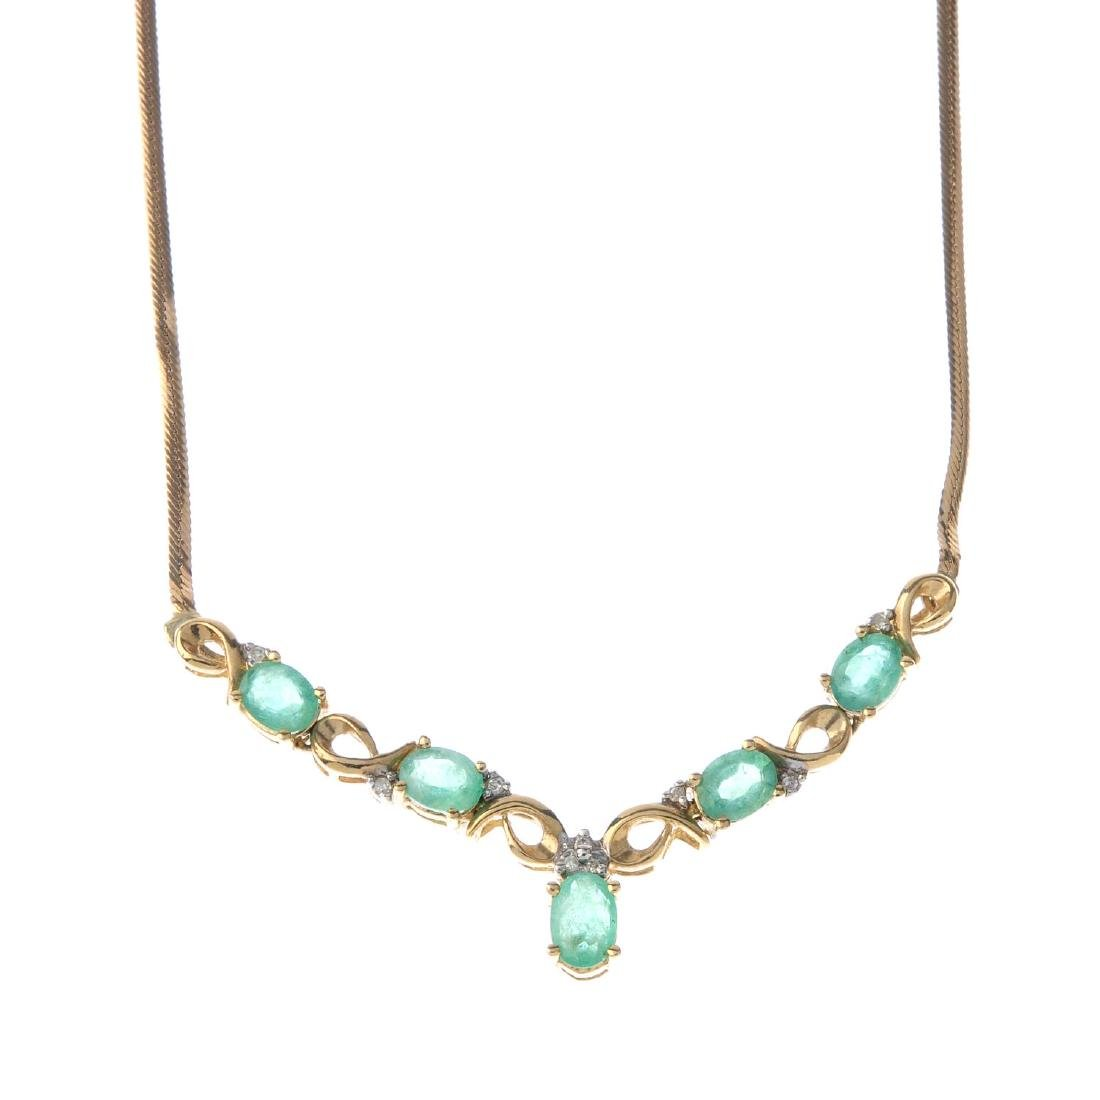 A 9ct gold emerald and diamond pendant. The oval-shape